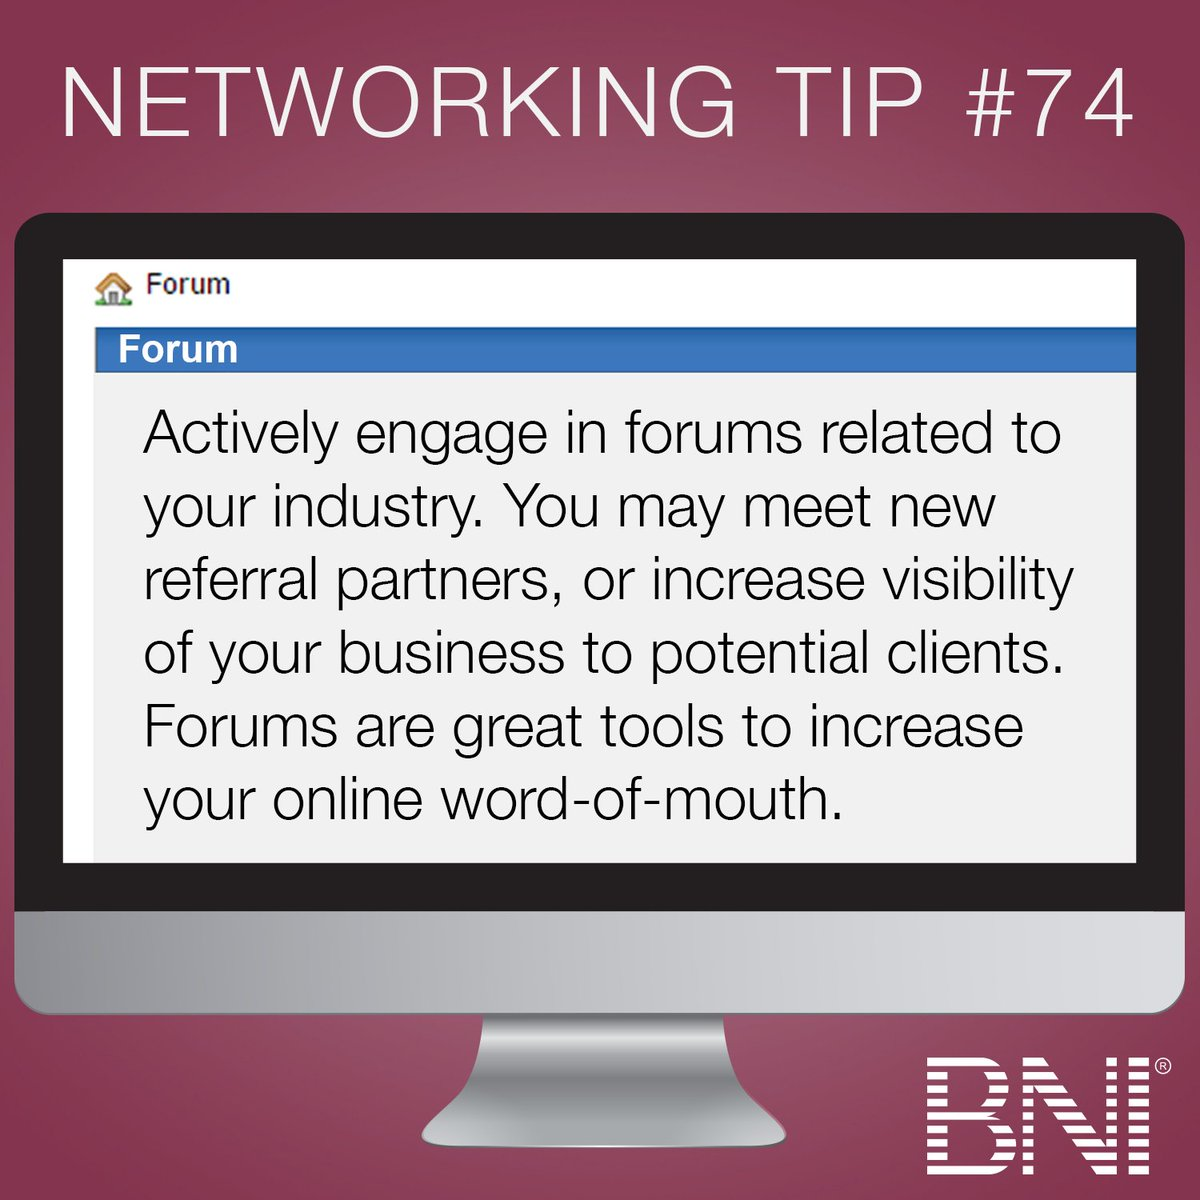 Take your networking online, and get involved with a forum. You never know what success it may bring. https://t.co/MINZbVehLw